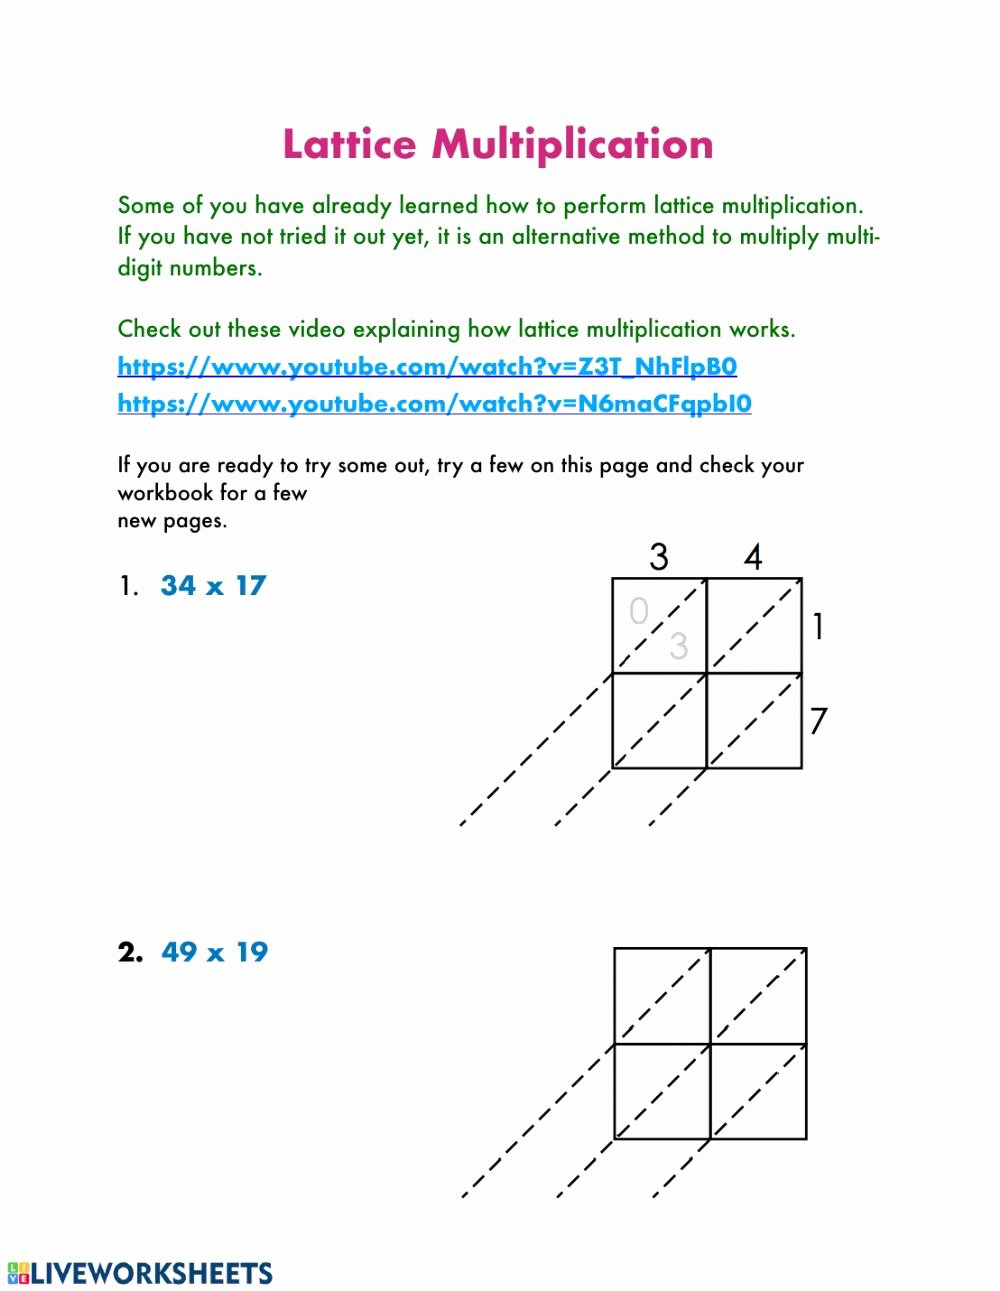 Lattice Method Multiplication Worksheets Awesome Lattice Multiplication Multiplication Worksheet